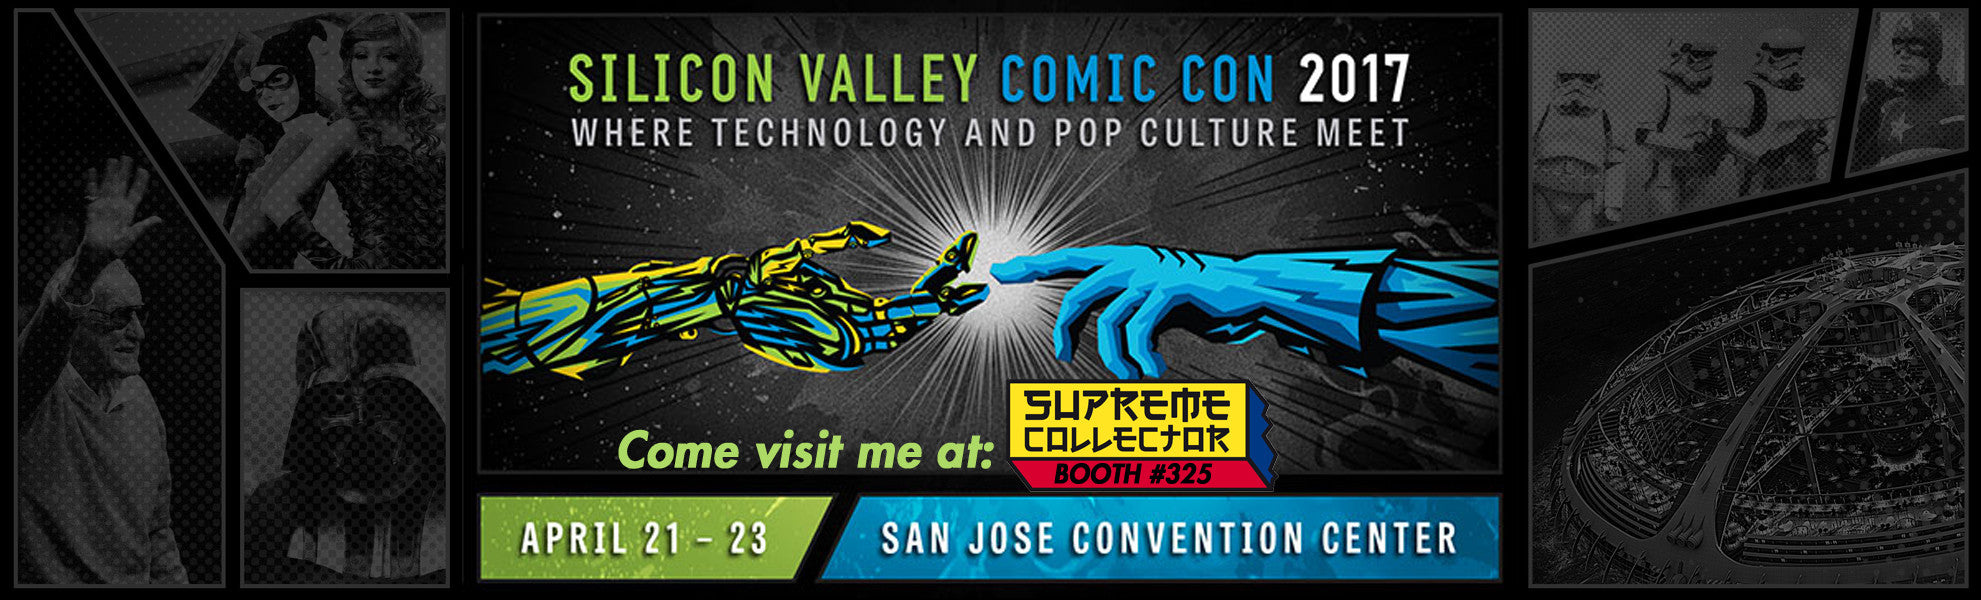 SupremeCollector at Silicon Valley Comic Con 2017